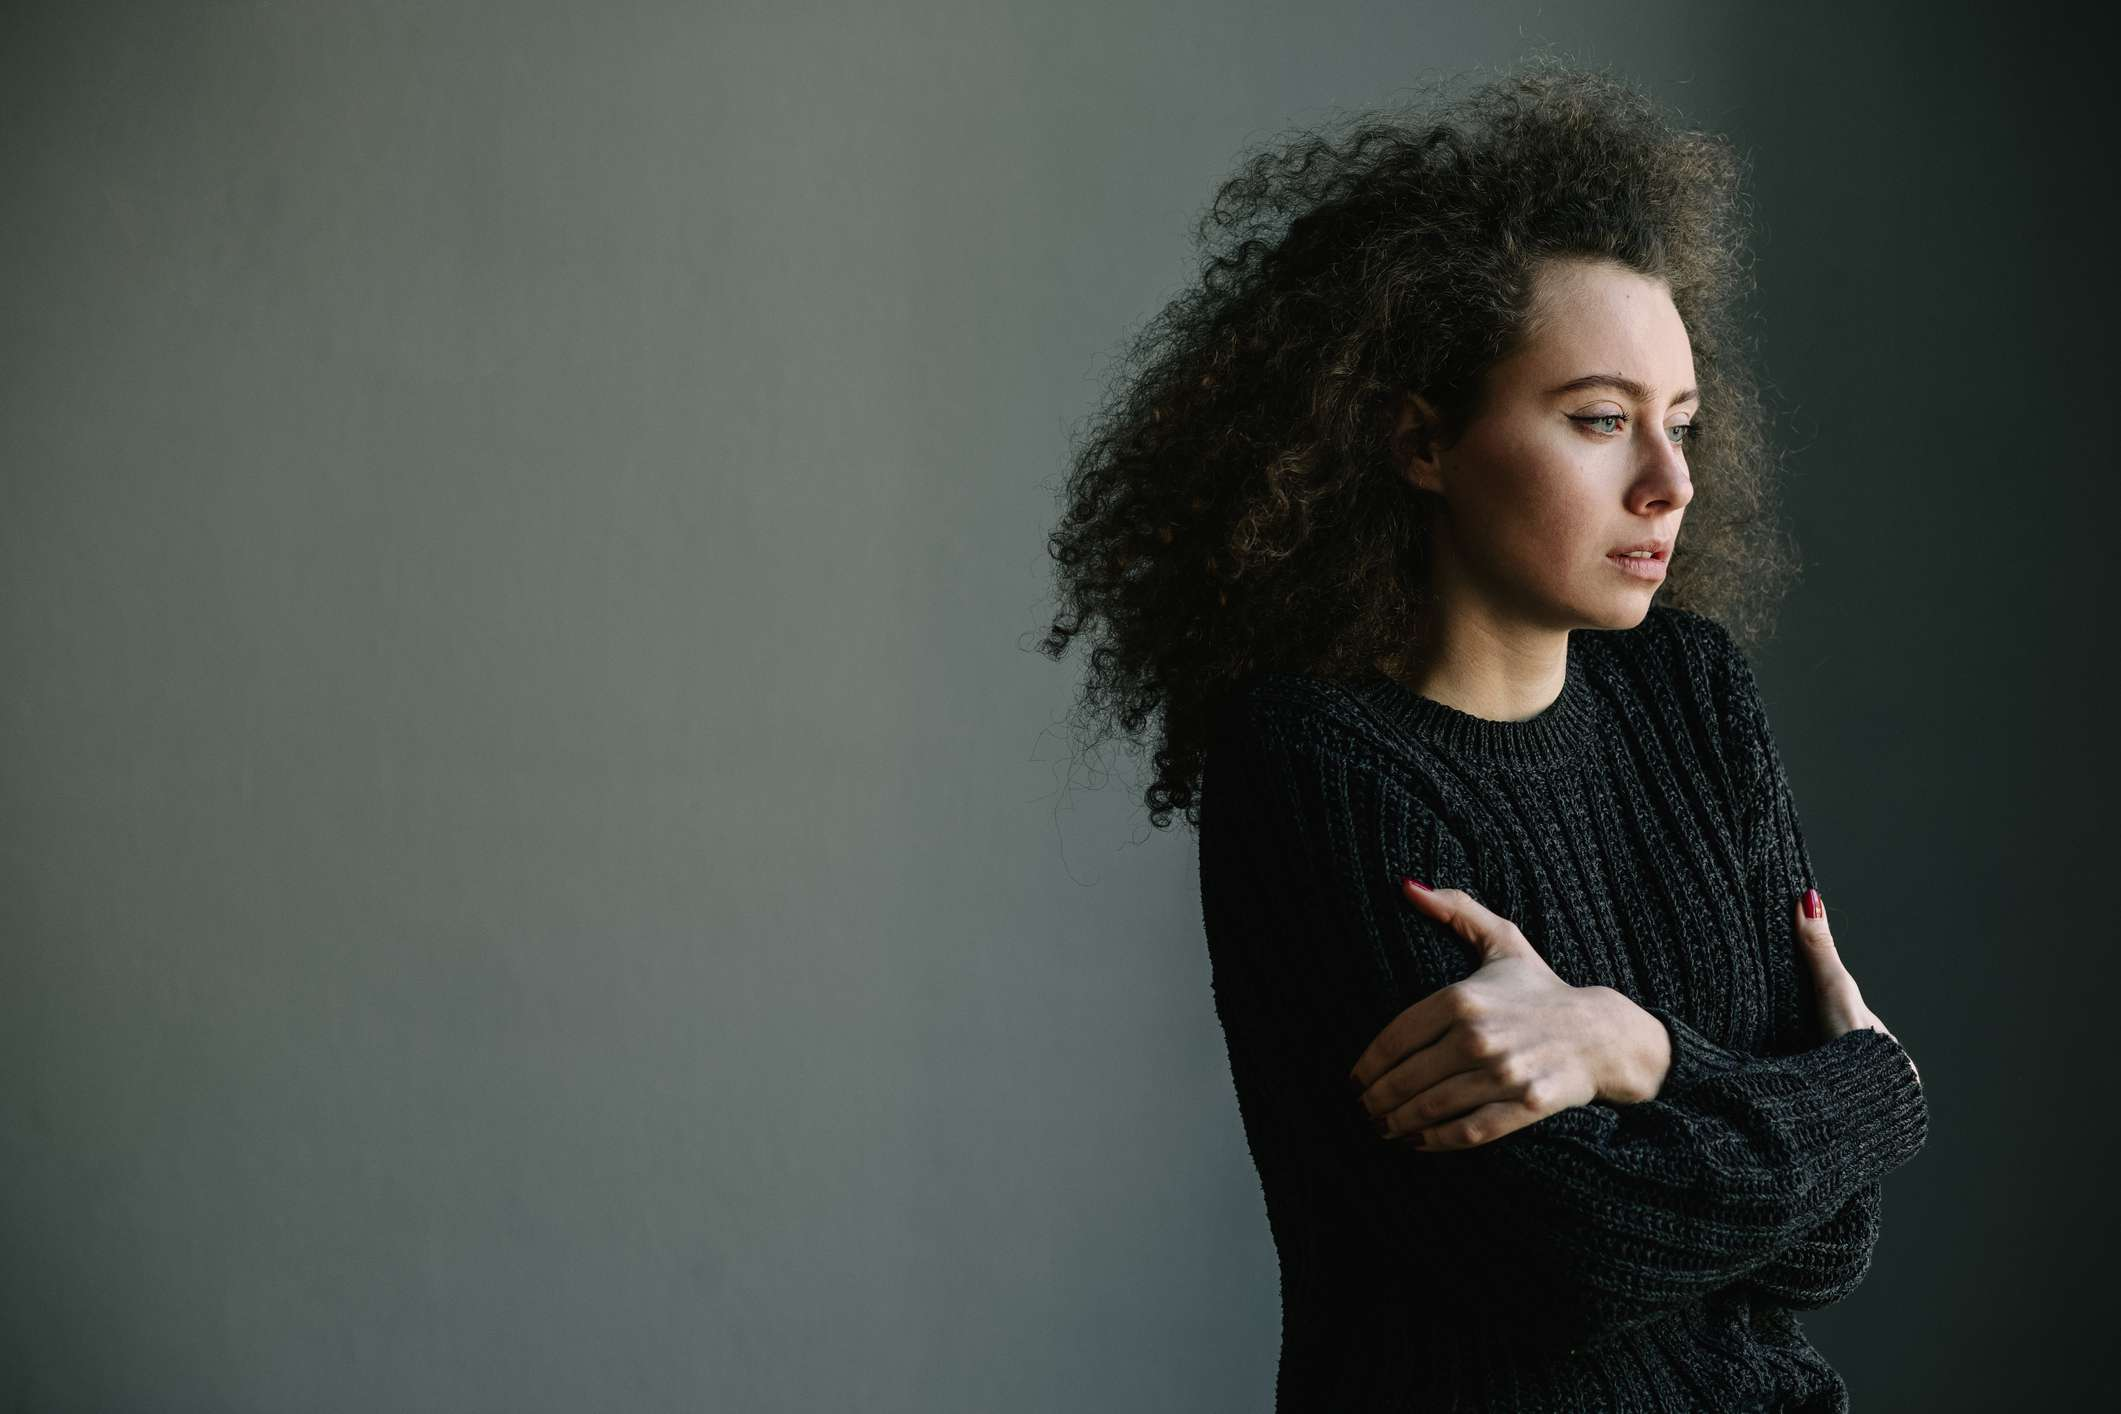 Woman holds hugs herself and stares off to her left with gray background